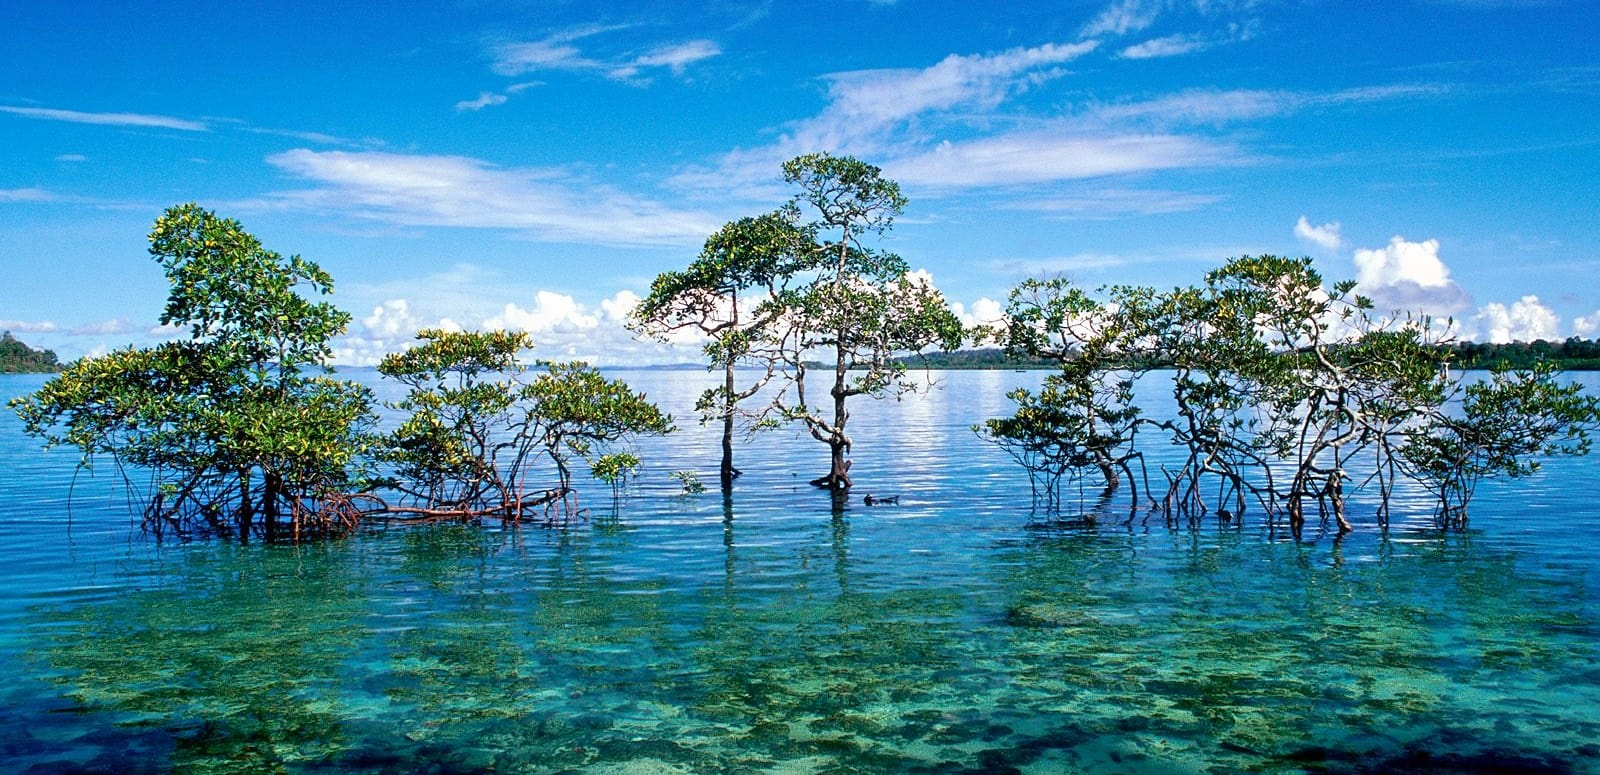 Havelock_island__andaman_and_nicobar_islands__india.jpg